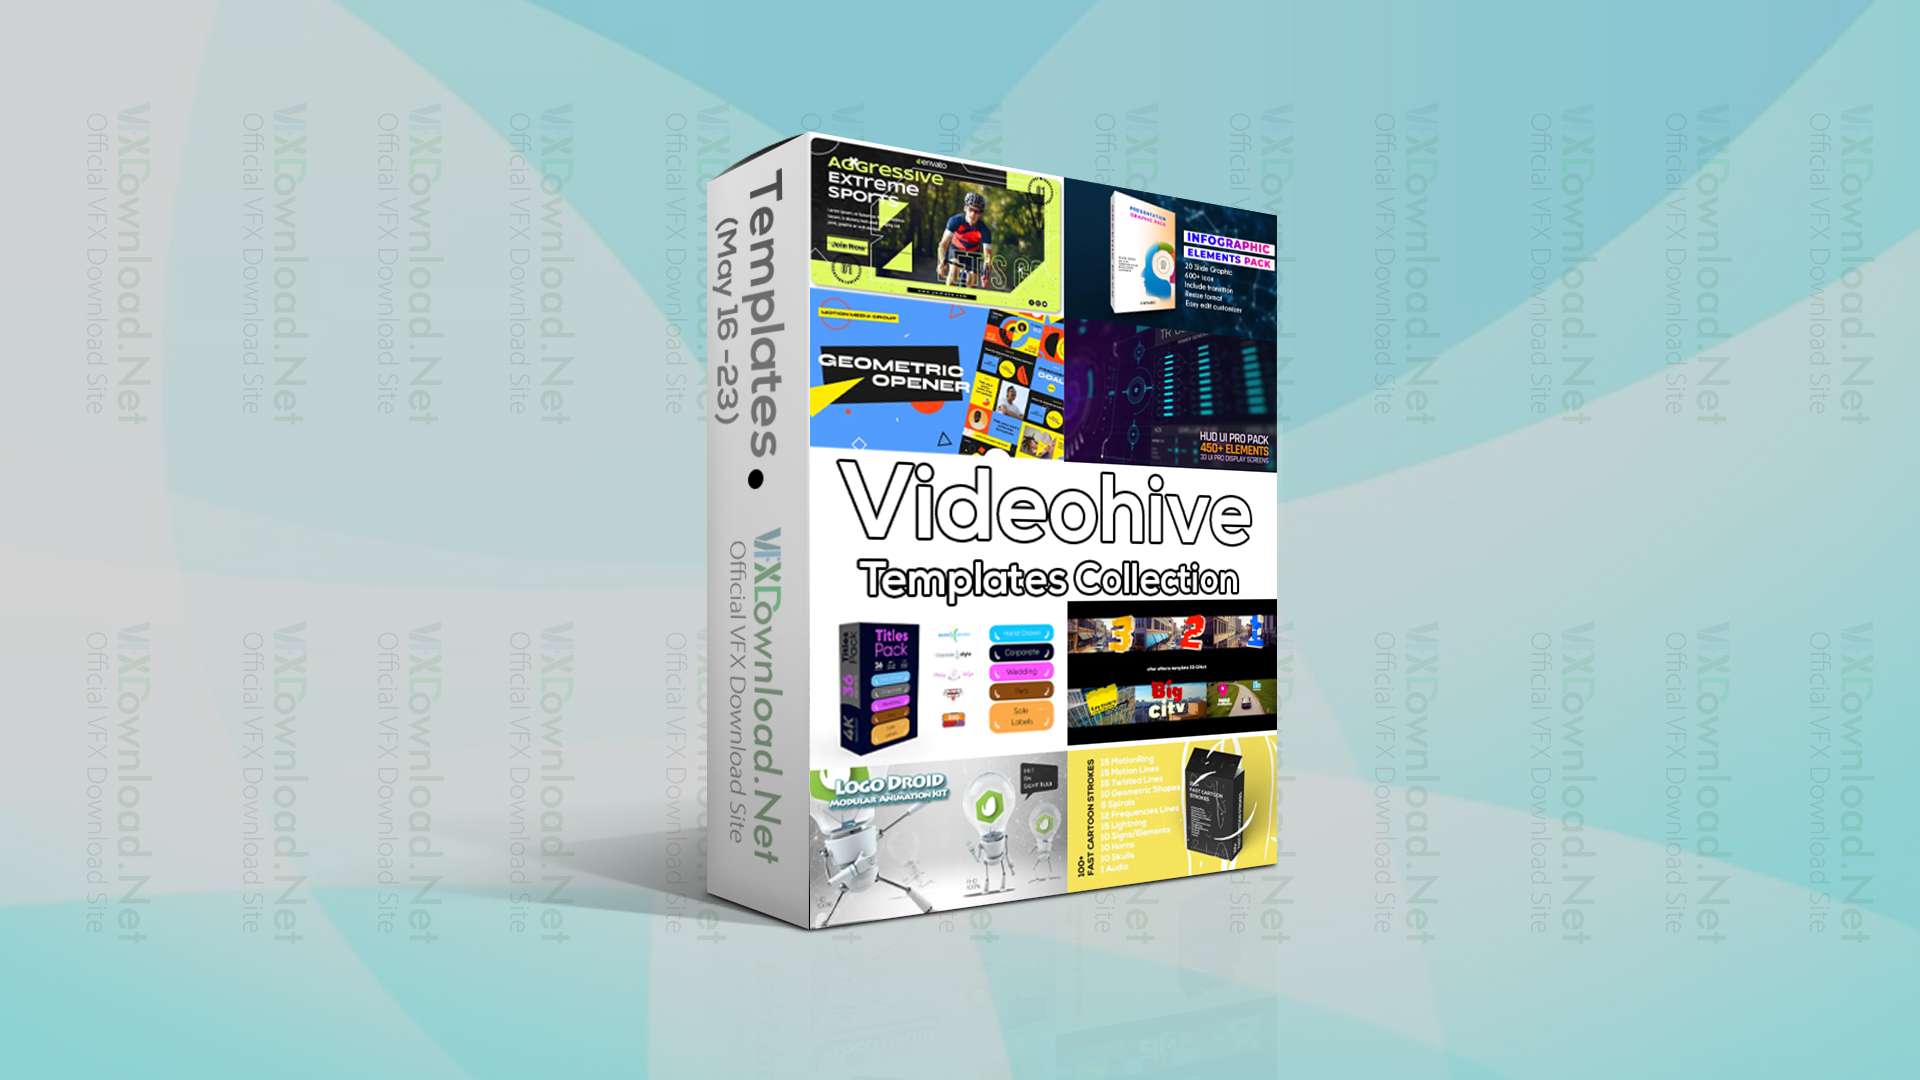 Videohive Templates Collection (16 to 23 May 2021)